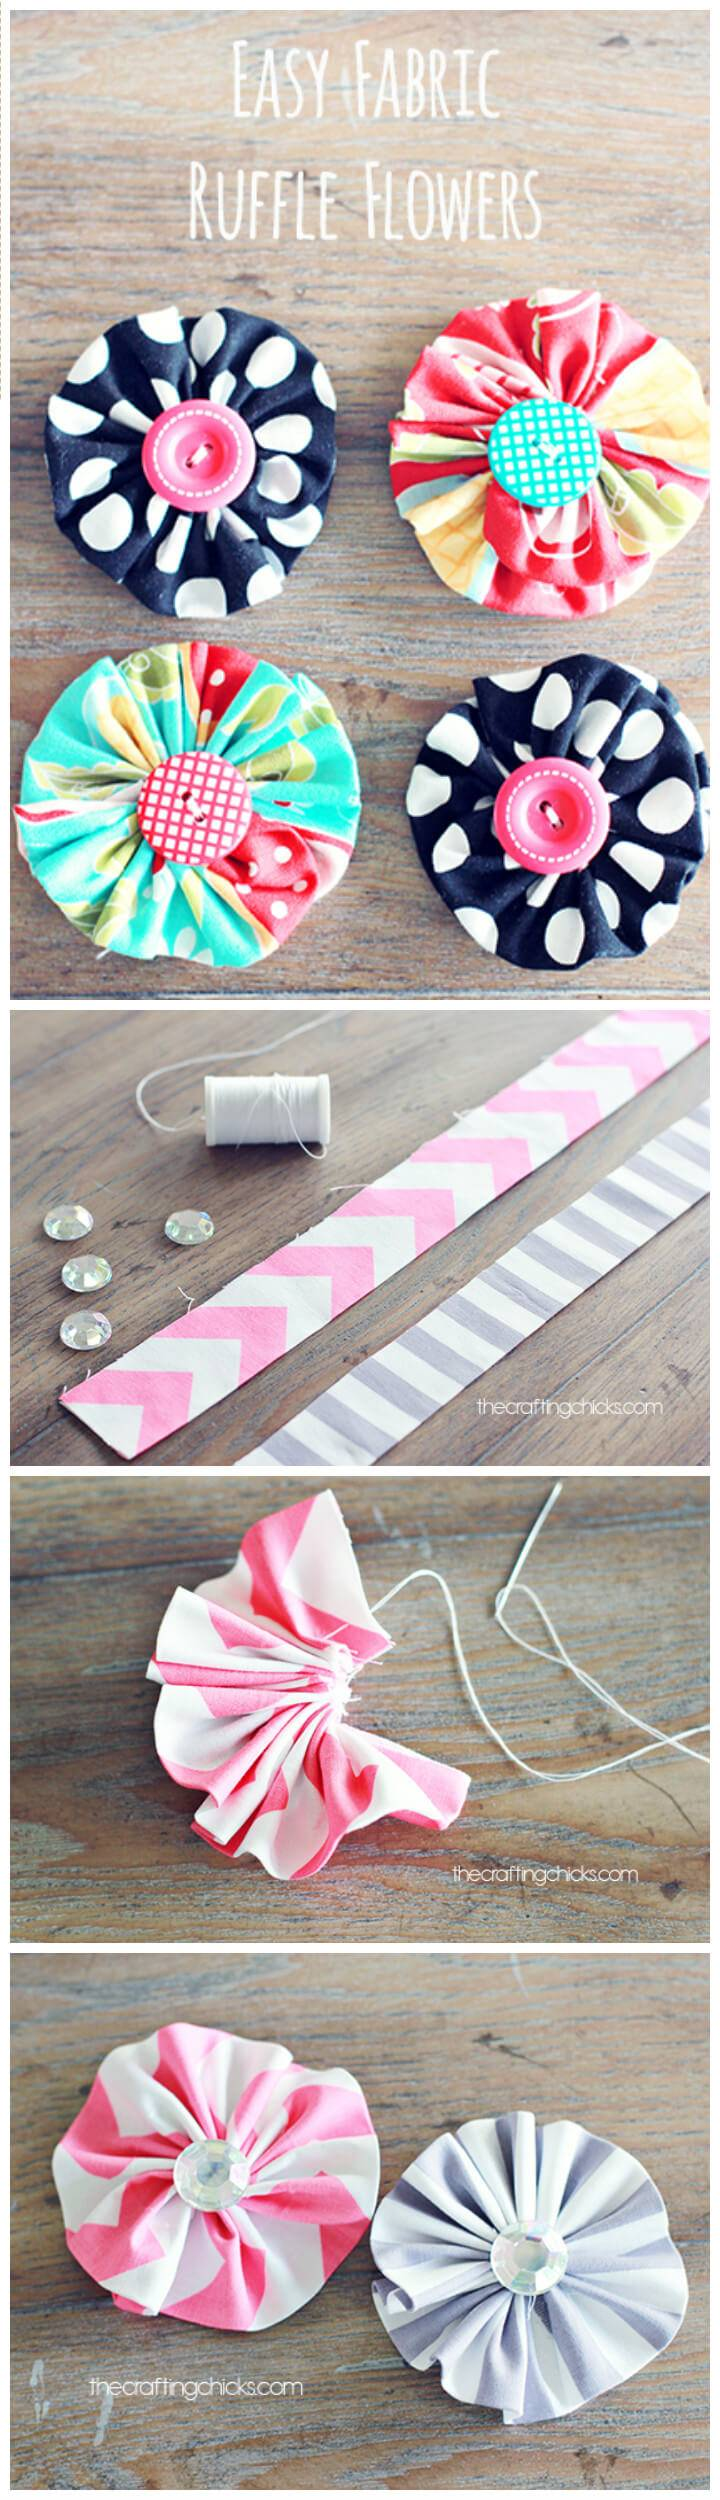 50 easy fabric flowers tutorial make your own fabric for Fabric crafts to make